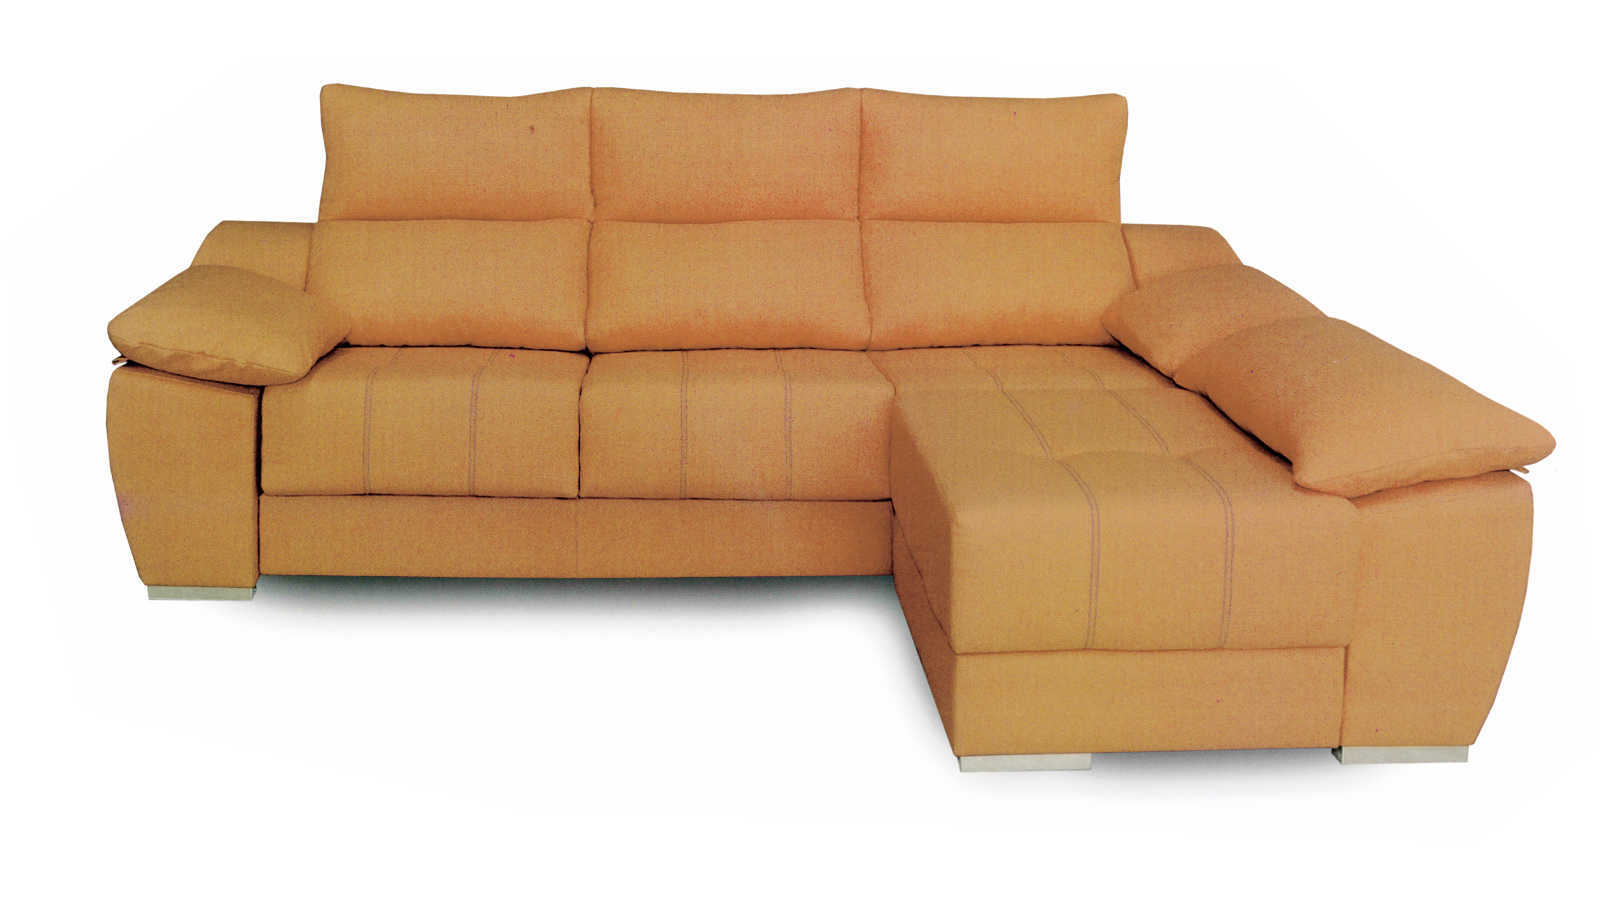 Chaiselongues sofas baratos valencia low cost for Sofas baratos valencia